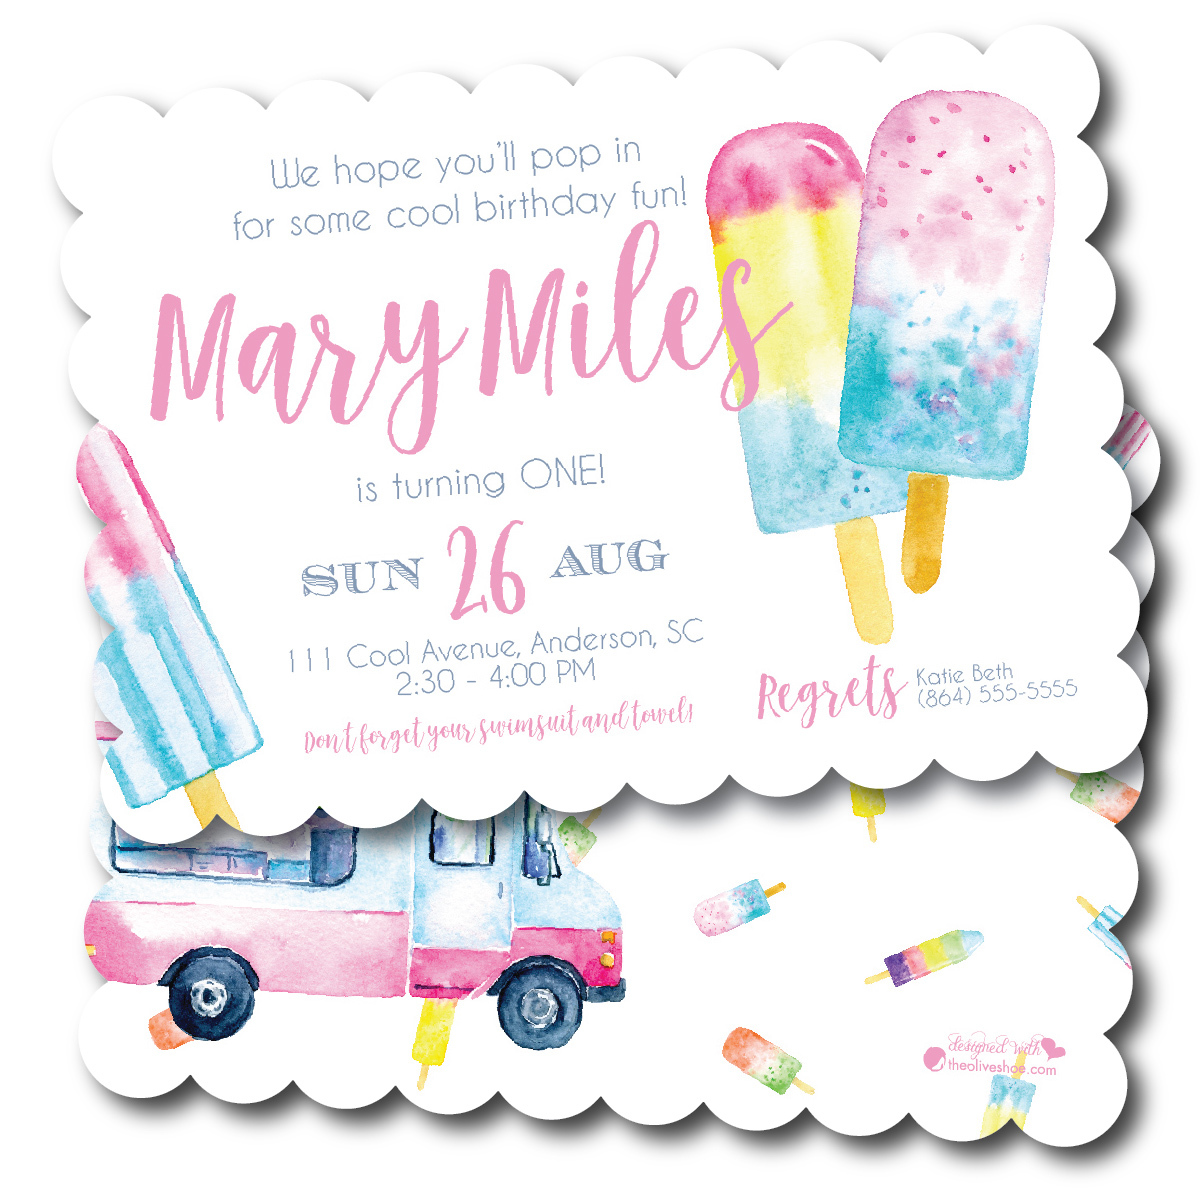 Celebrate Warmer Weather with a Popsicle Party